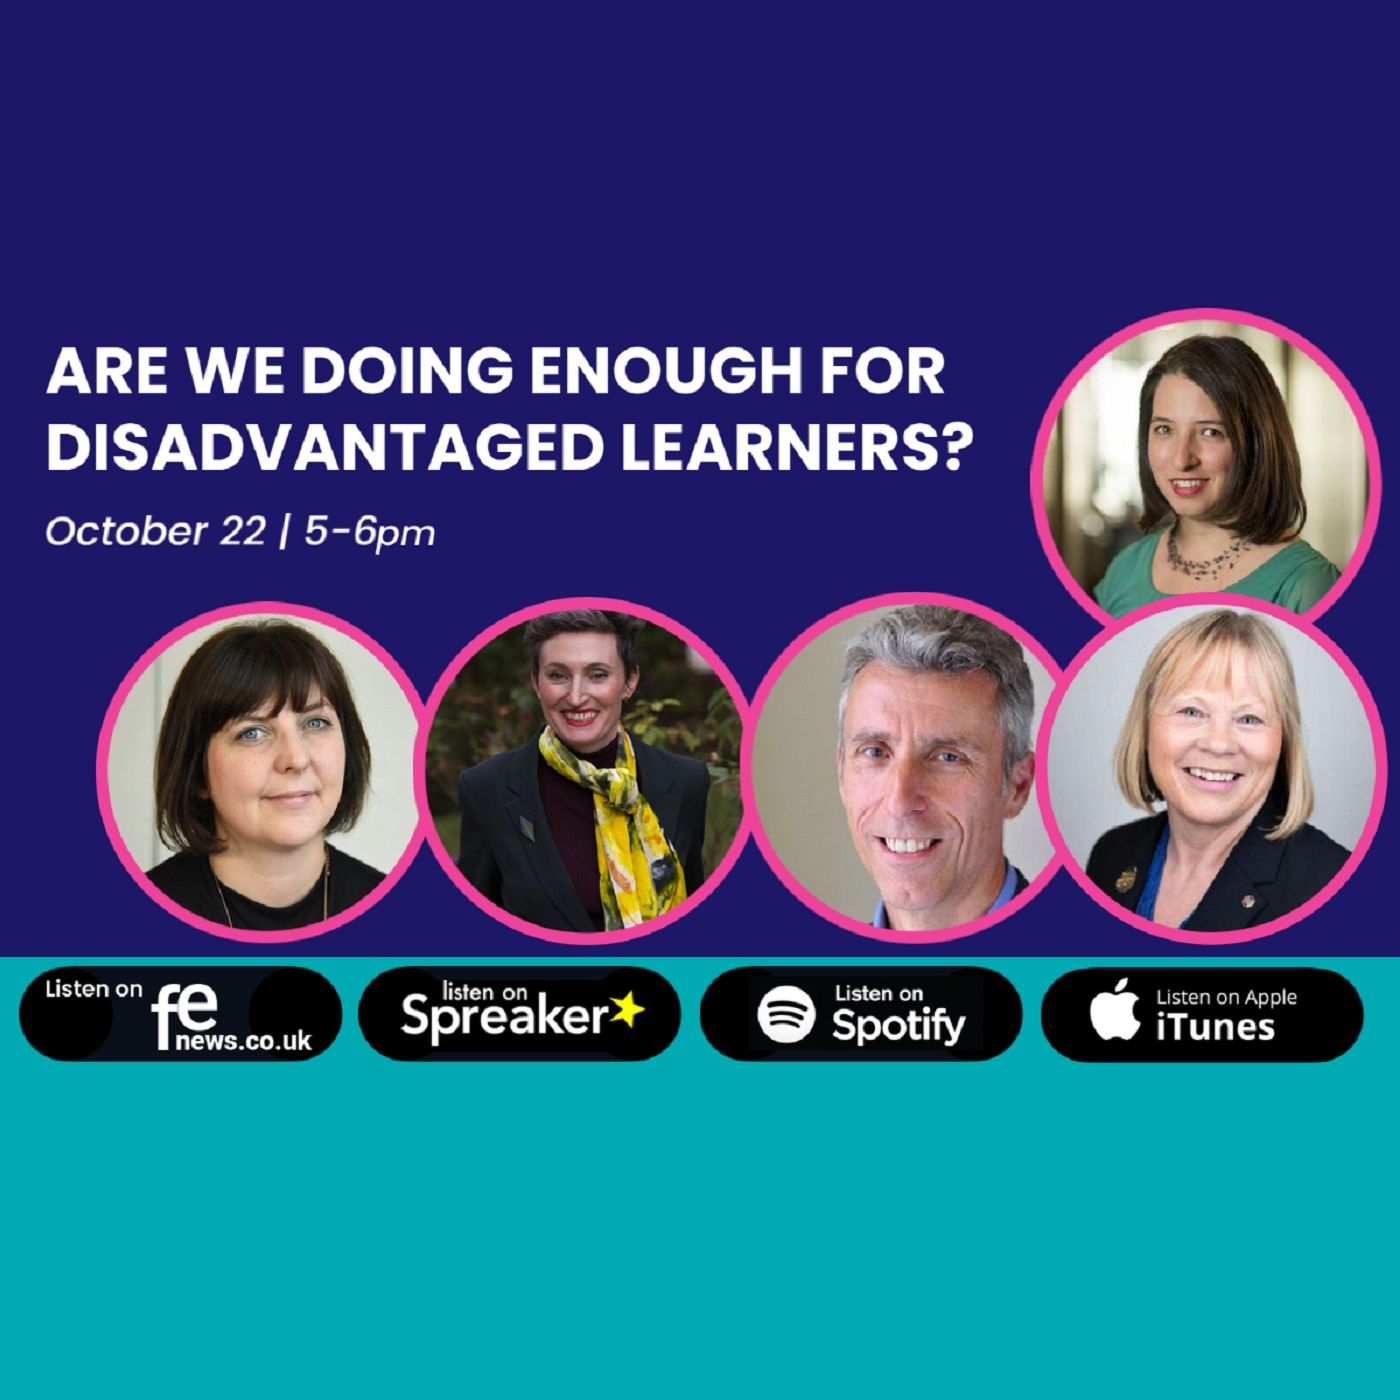 Are we doing enough for disadvantaged learners?